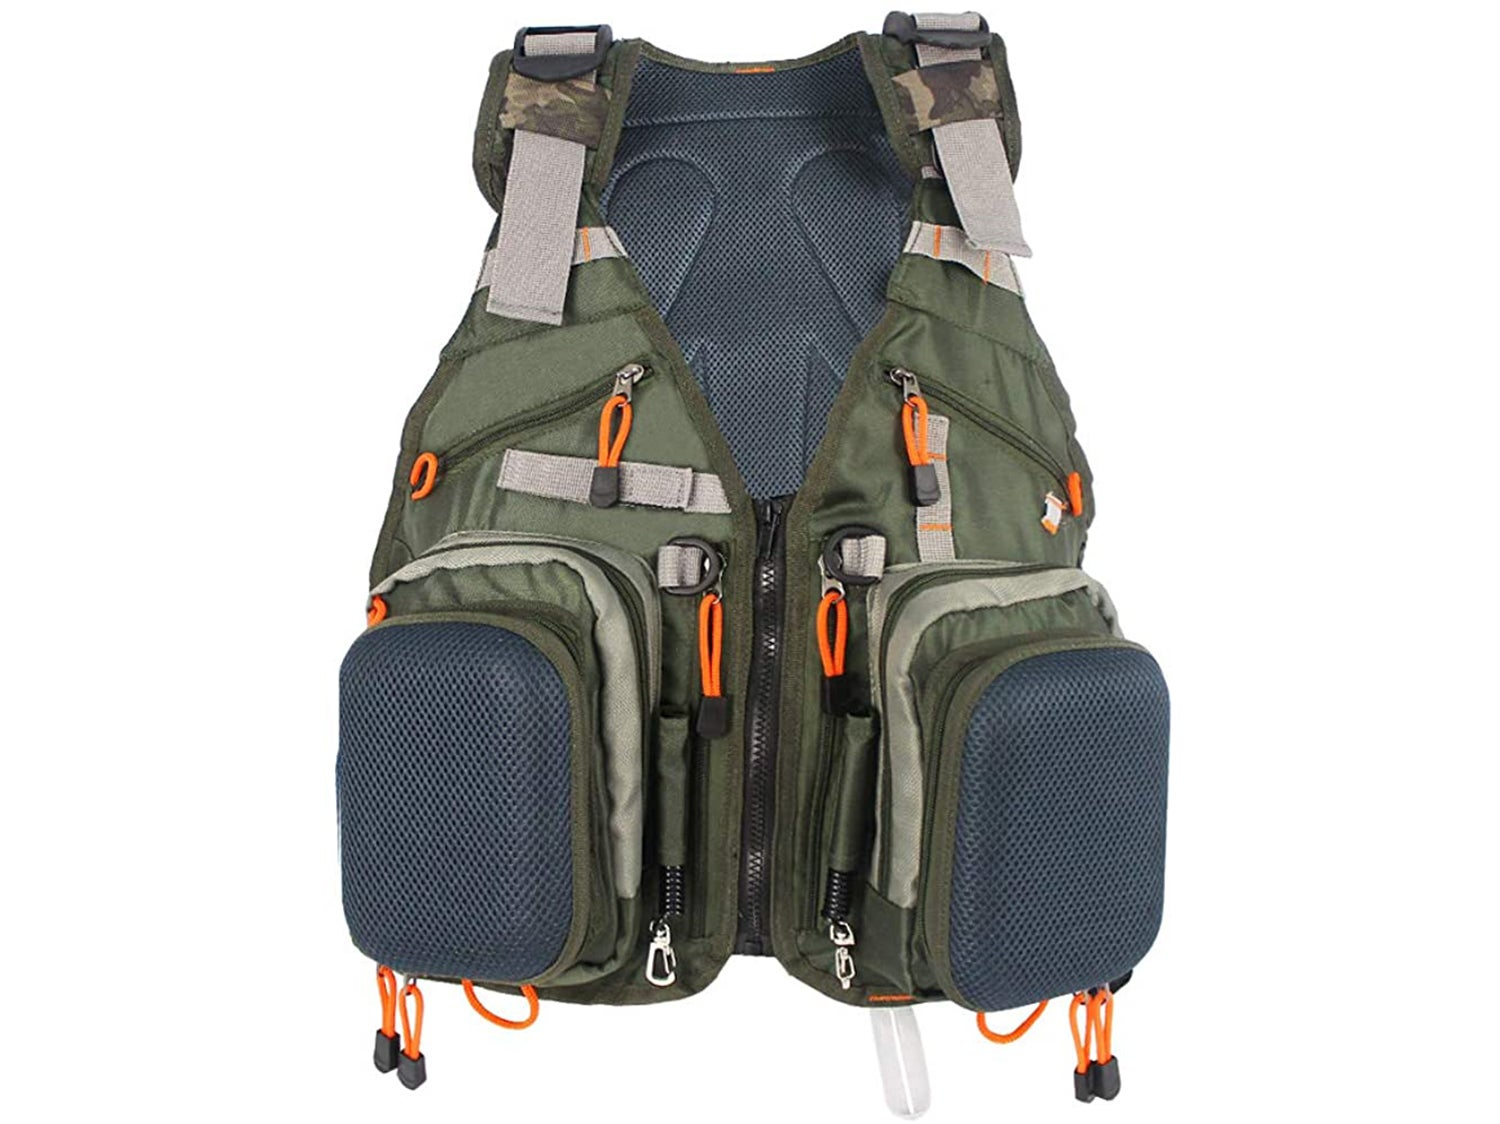 Fly Fishing Vest Pack Adjustable for Men and Women